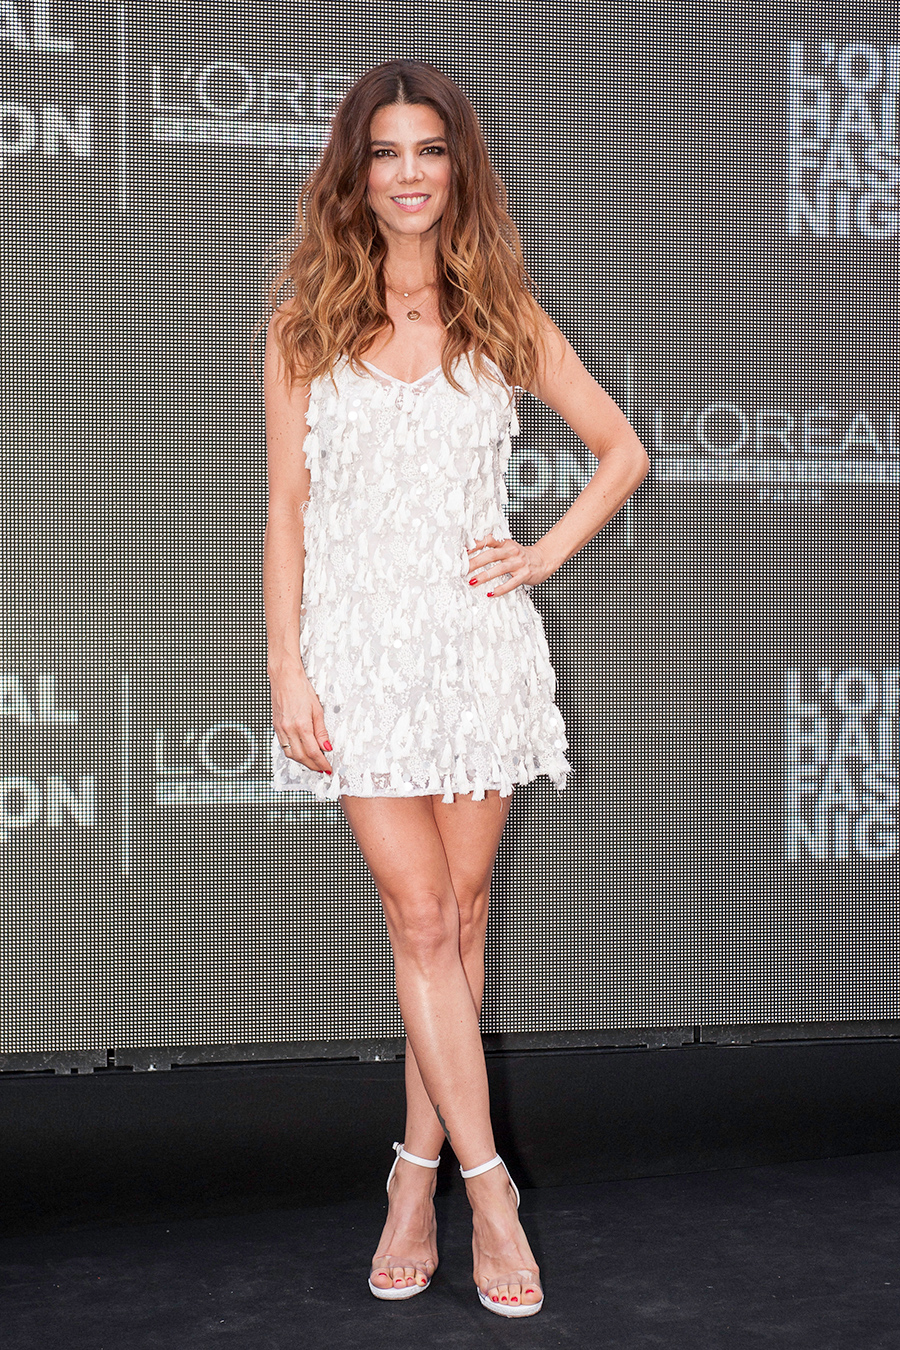 loreal-hair-fashion-night-04. Juana Acosta